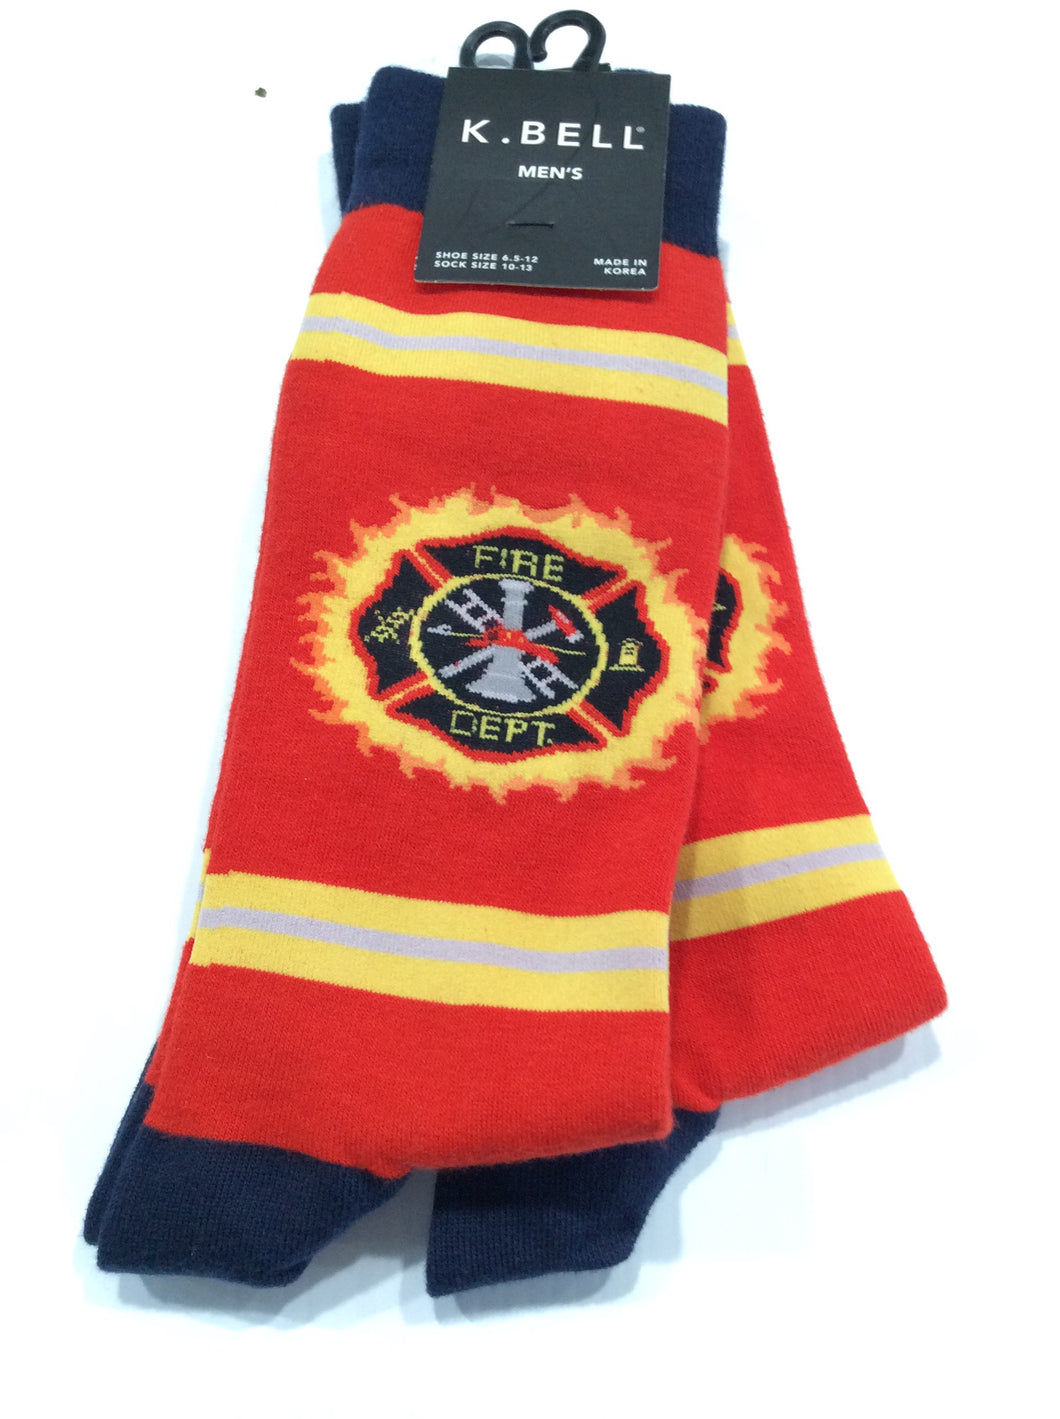 Men's Fire Department Socks